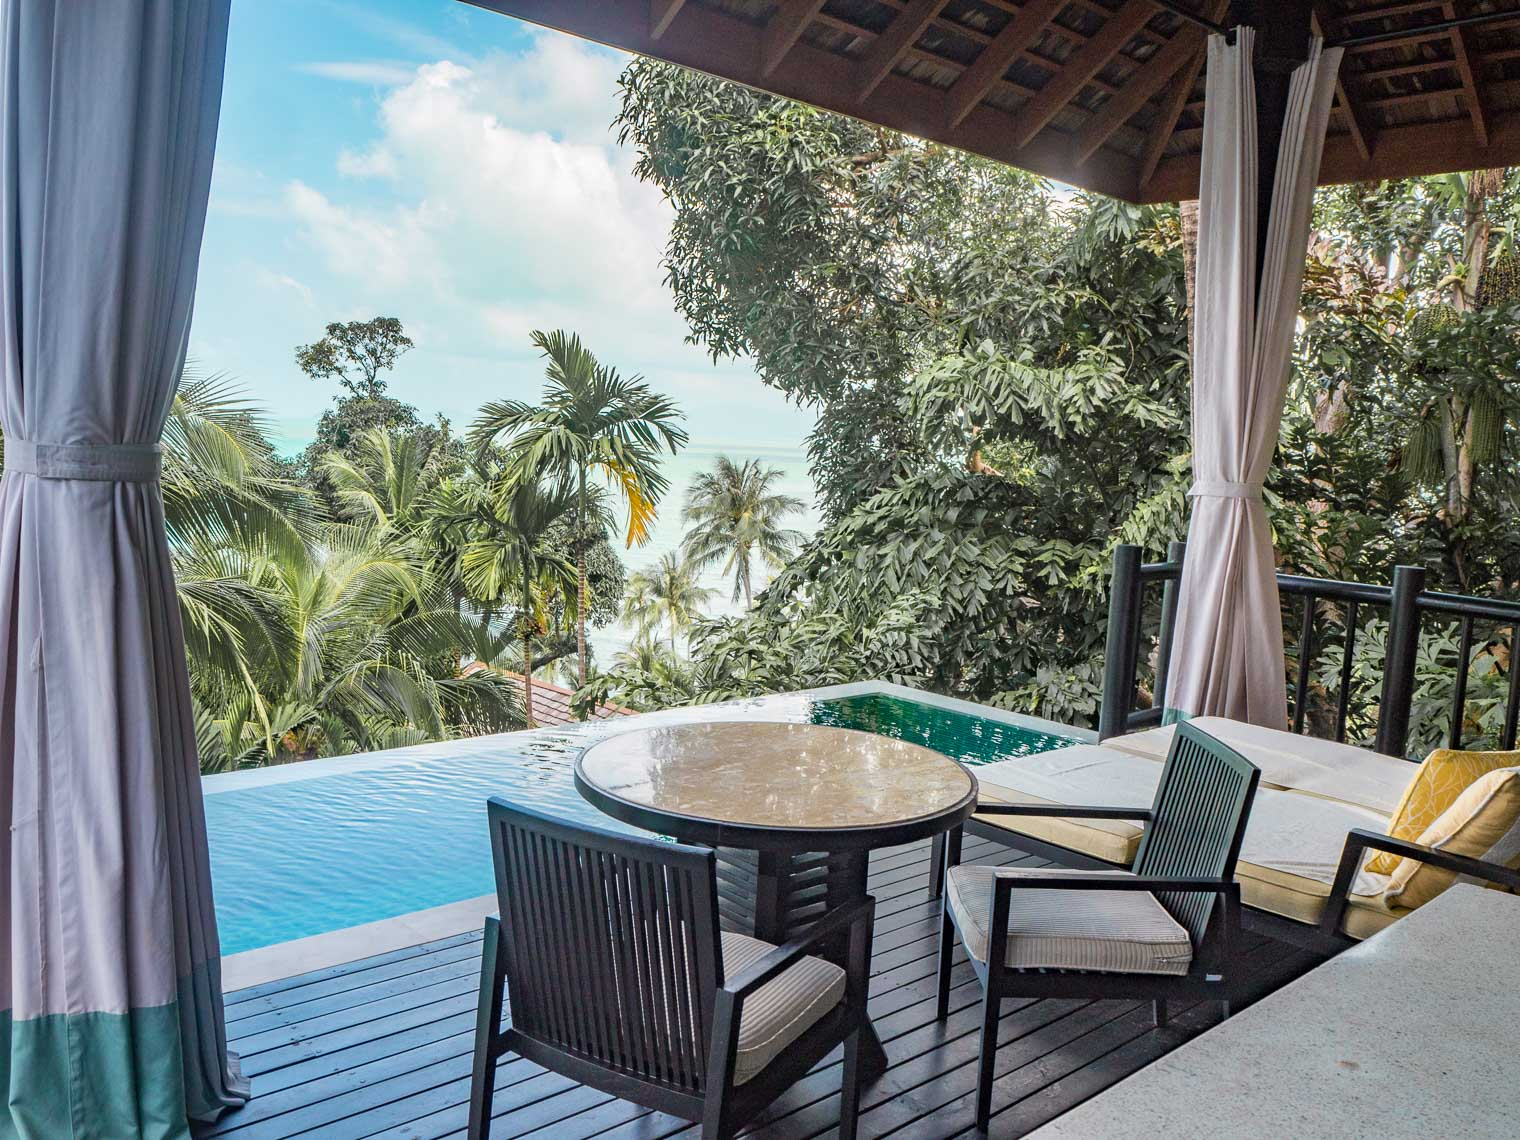 Terrace at Four Seasons Koh Samui private villa